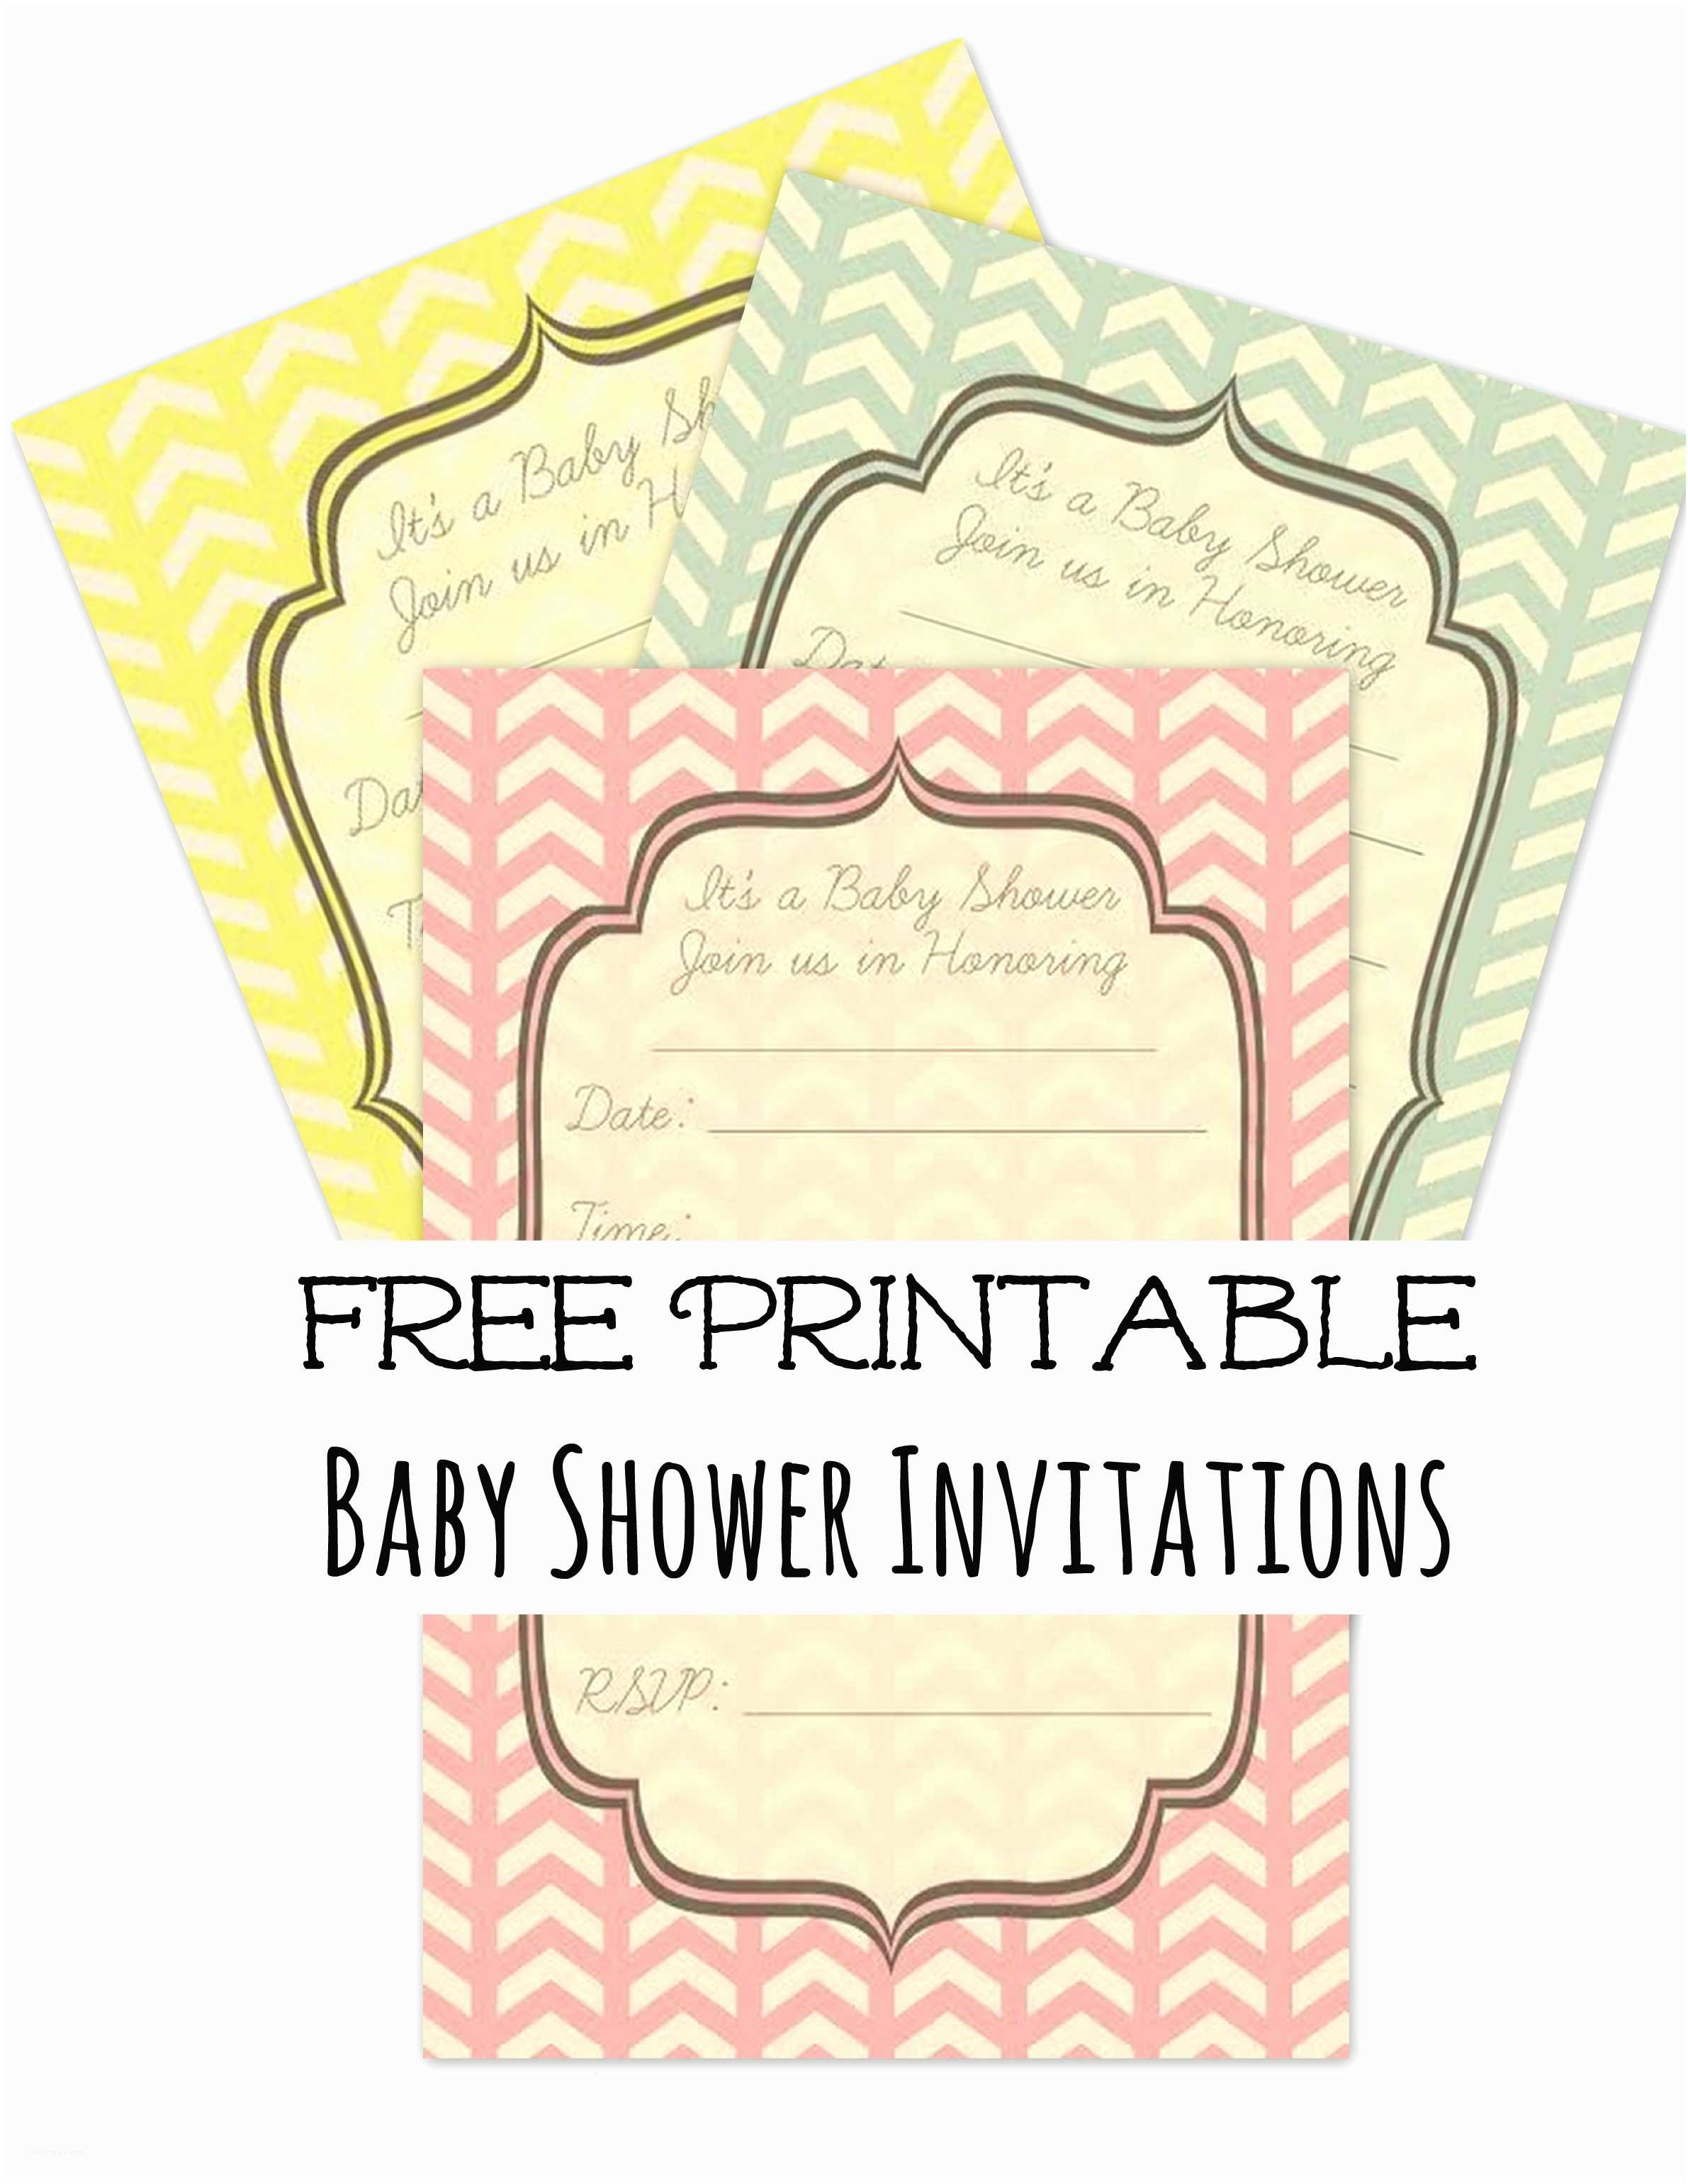 Make Baby Shower Invitations Online Baby Shower Invitations Create Your Own Free